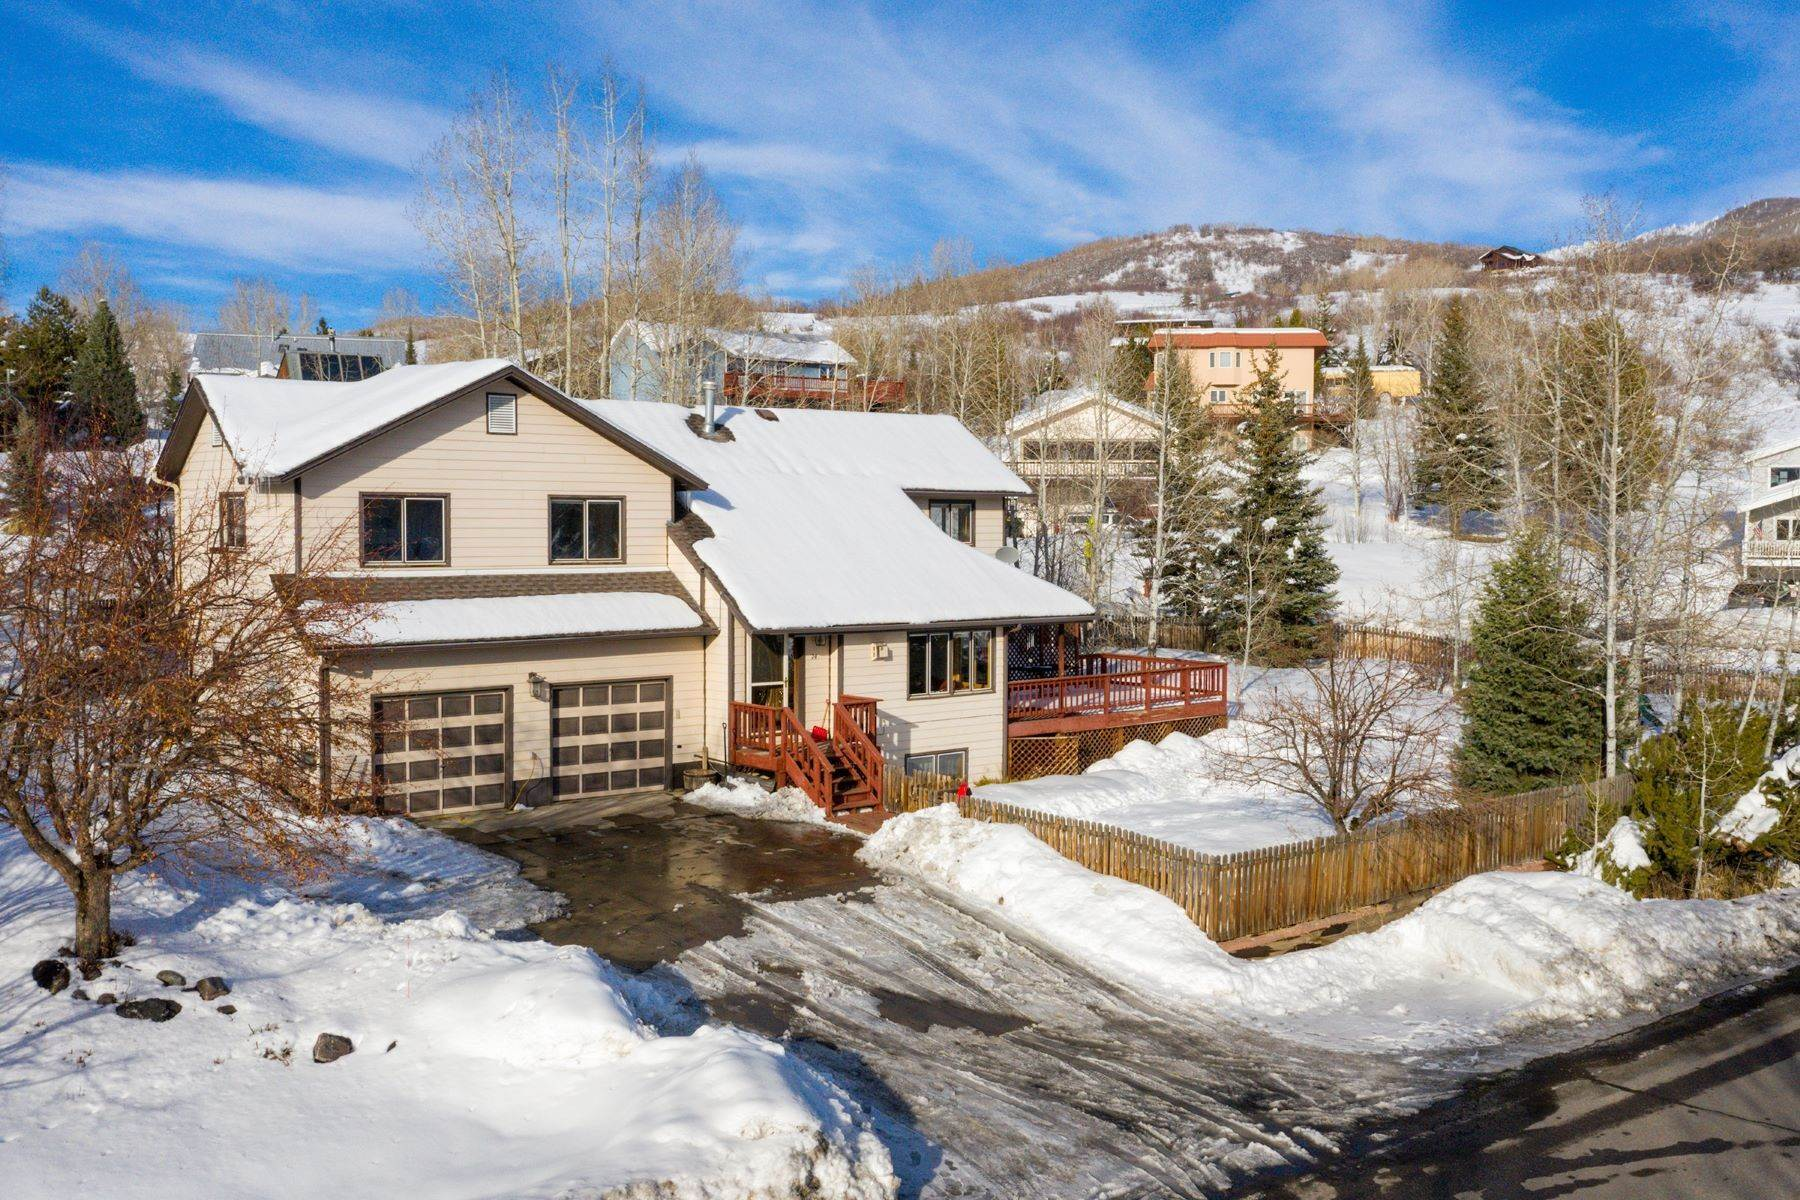 Property for Sale at Ideal Steamboat Home 74 E Maple Street Steamboat Springs, Colorado 80487 United States